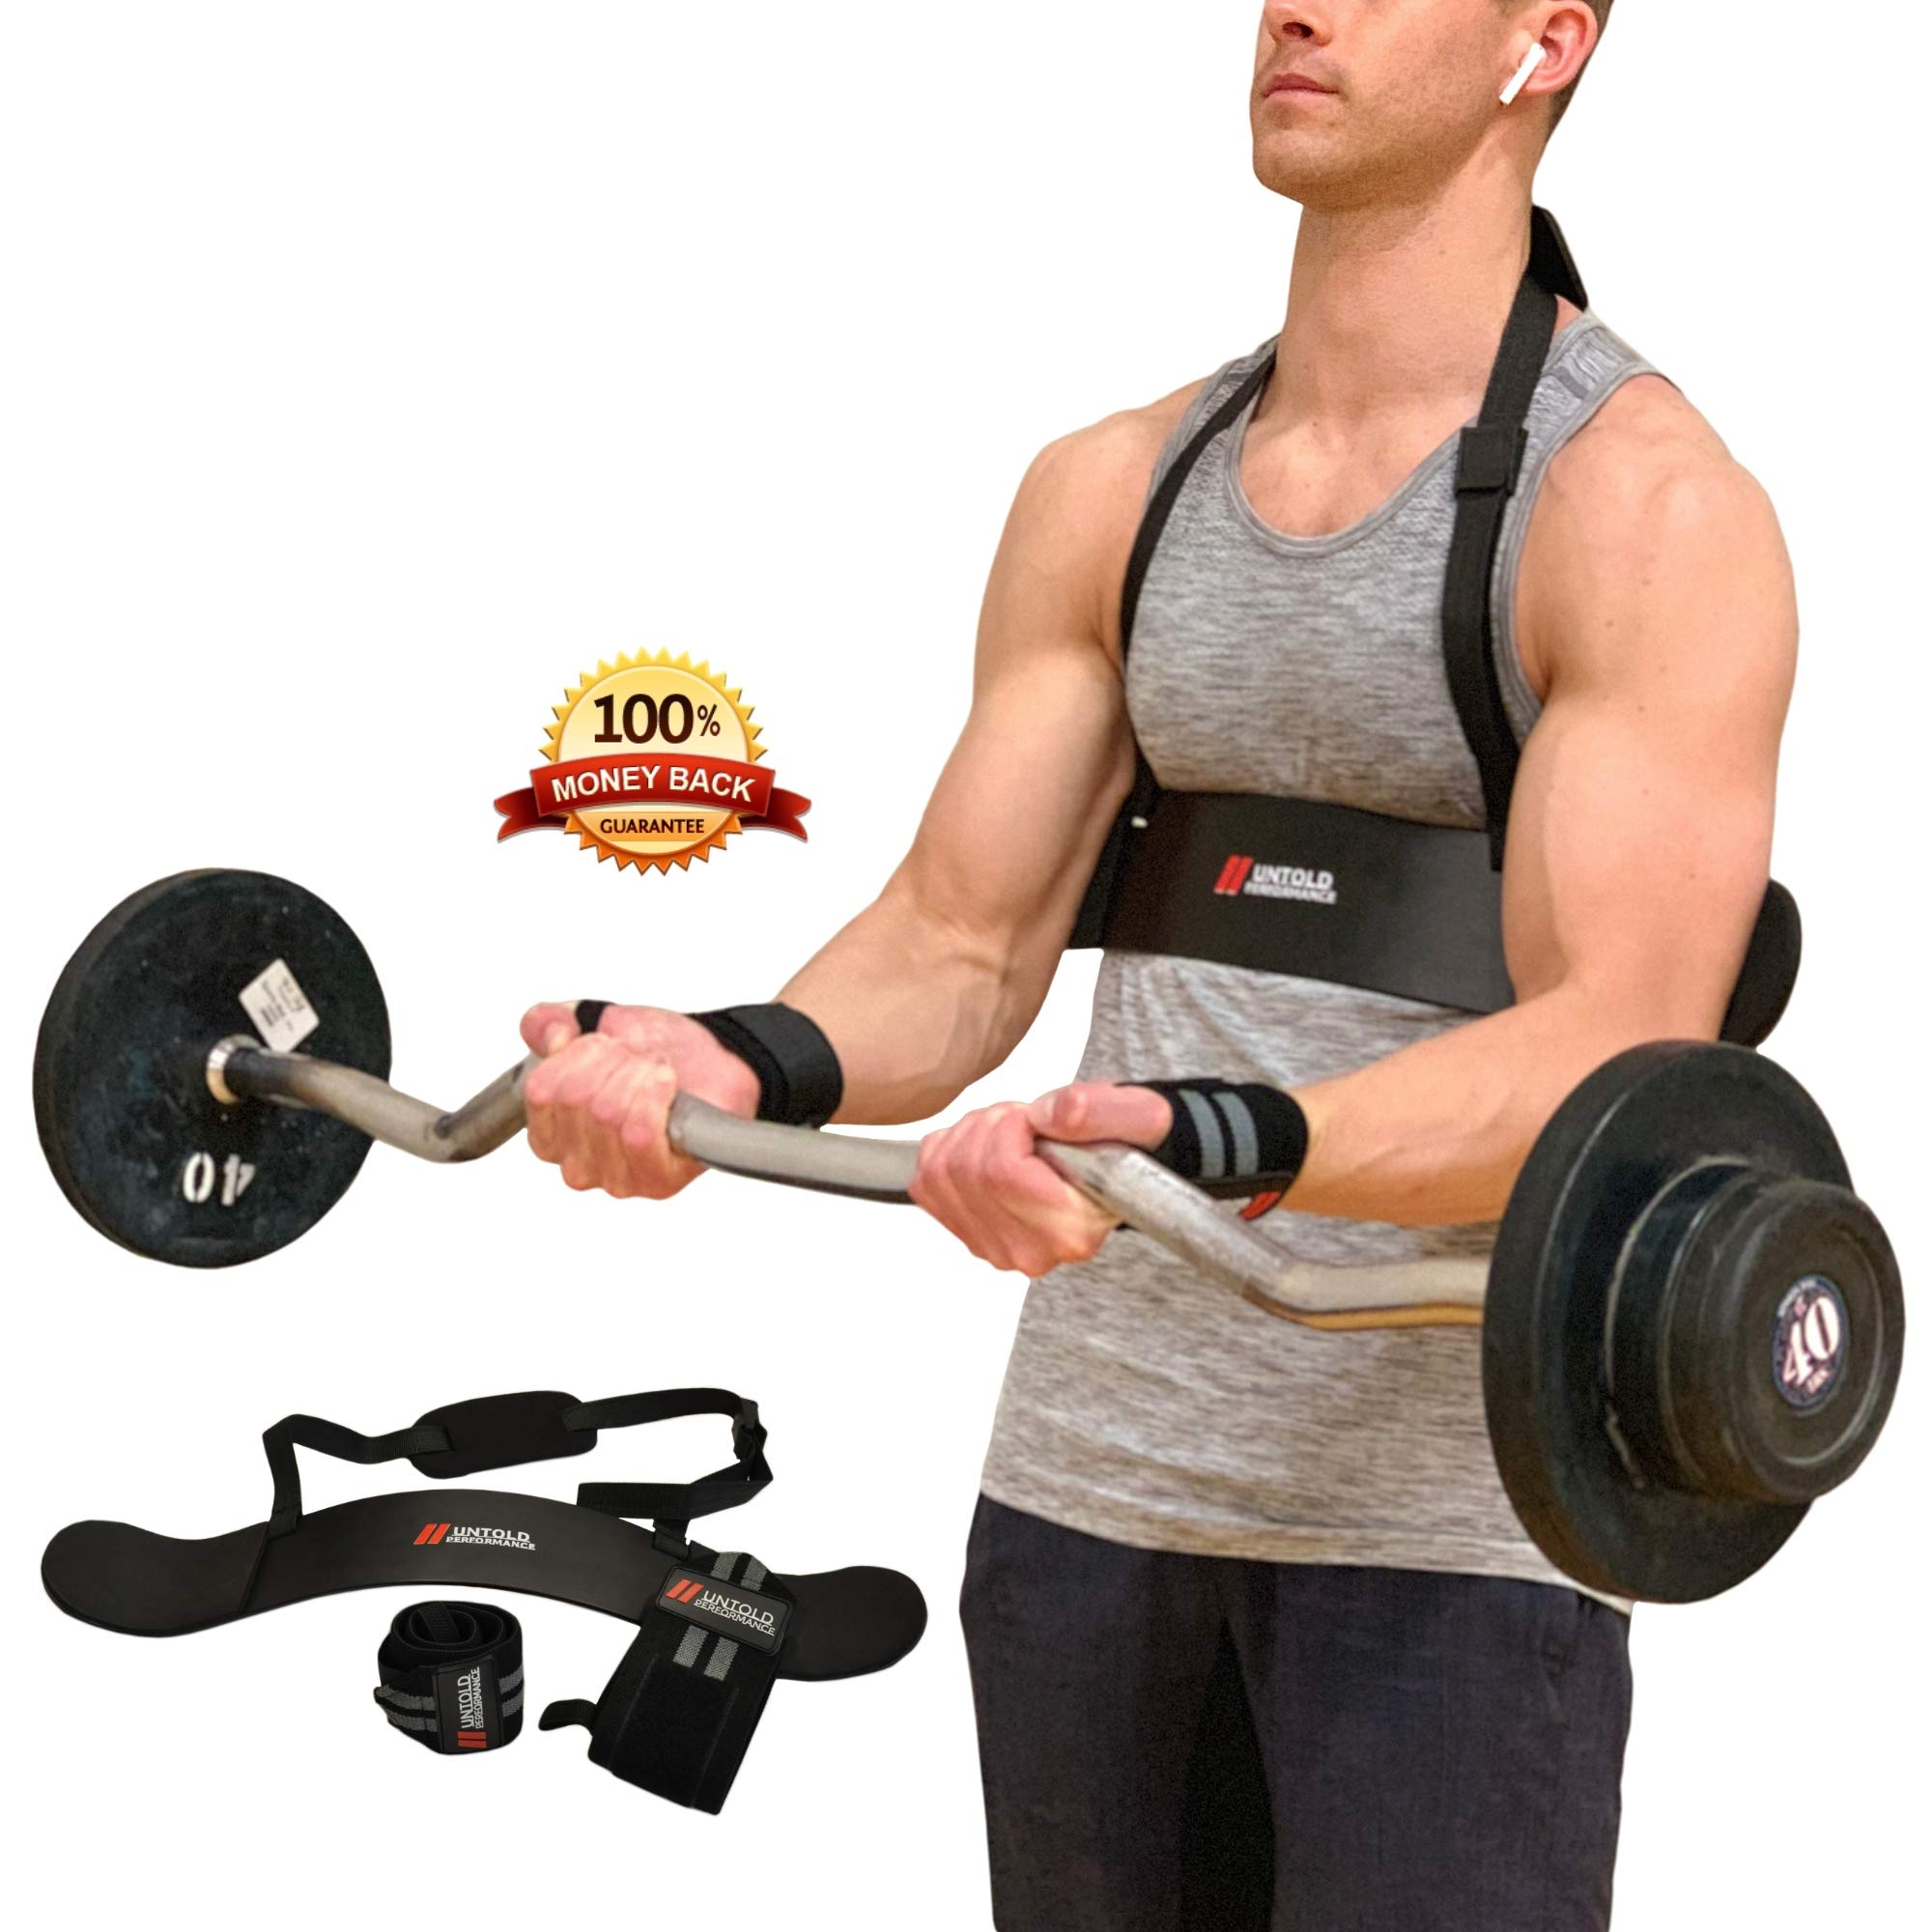 Arm Blaster For Bicep Curl Support With BONUS Wrist Wraps For Wrist Support | Arm Blaster Bicep Curl & Bicep Isolator For Weightlifting | Bicep Blaster Strong Arm Blaster For Biceps Arm Curl Blaster